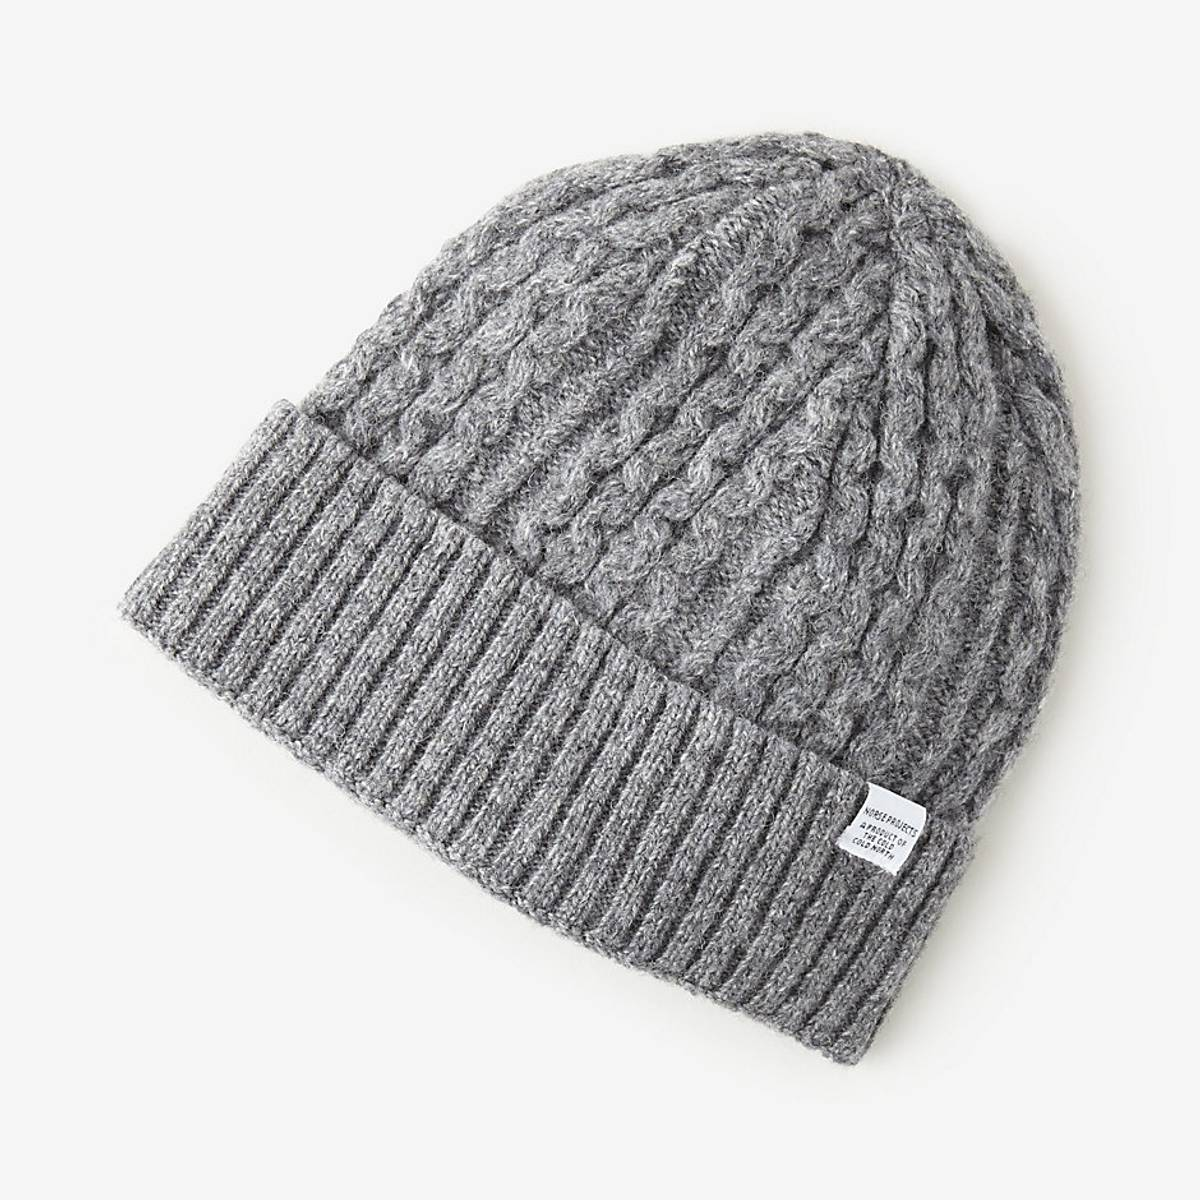 64fdfe6db99 Norse Projects Cable Knit Beanie